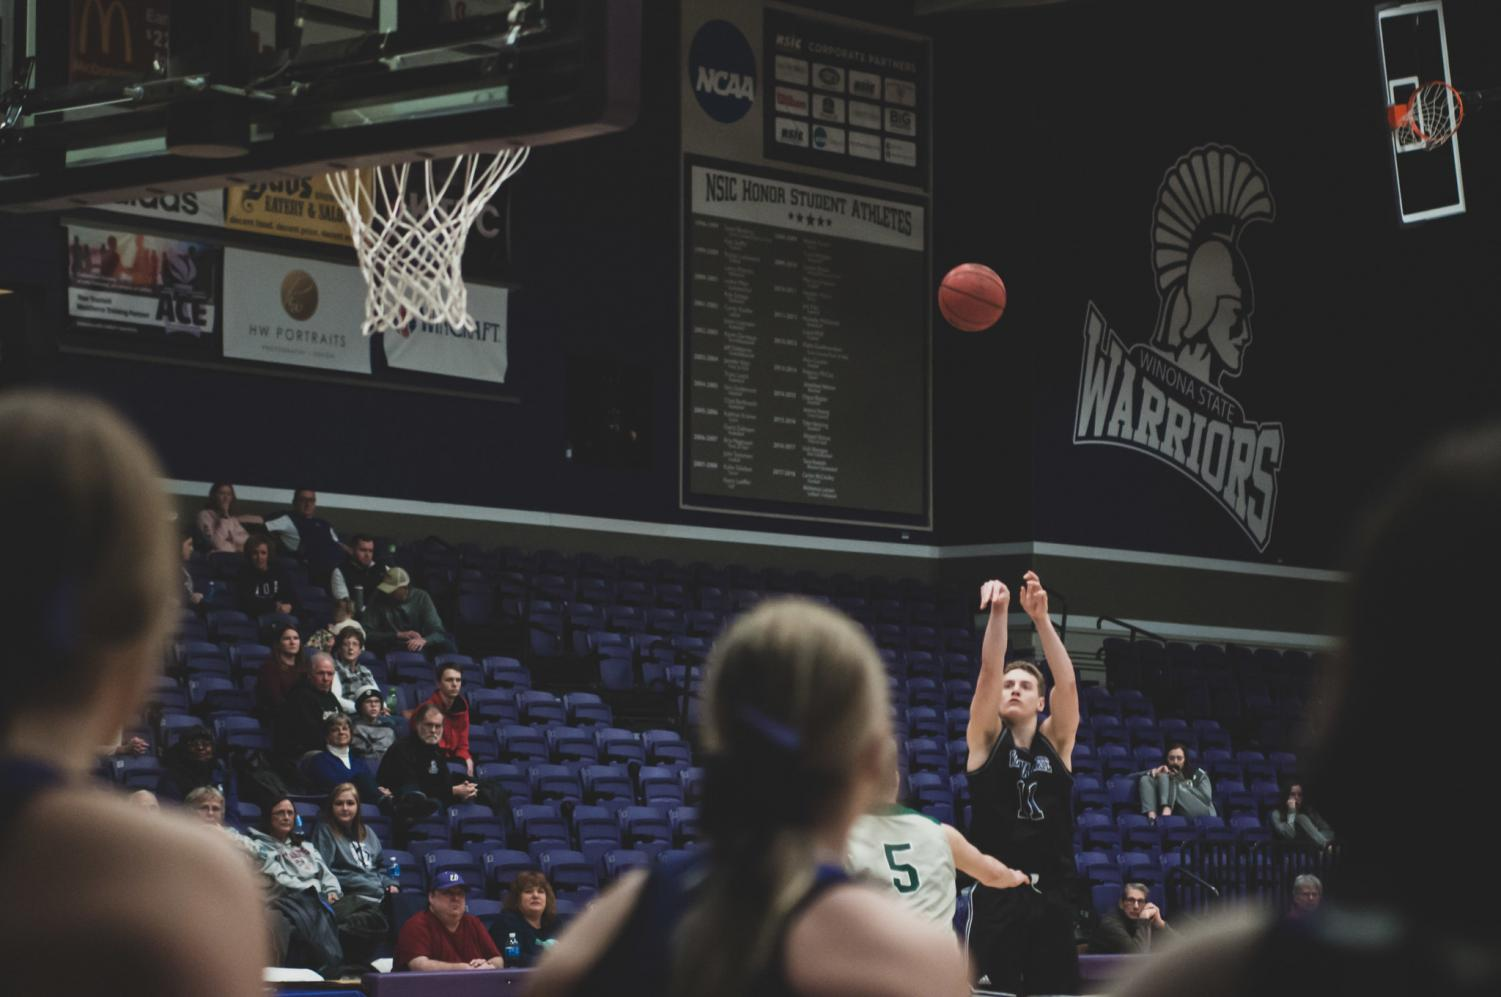 Winona State sophomore, Luke Martens looks to shoot a three-pointer in the second half of the game against Bemidji State. The warriors secured their win, scoring 82-74 on Saturday, Jan. 18 in McCown Gymnasium.